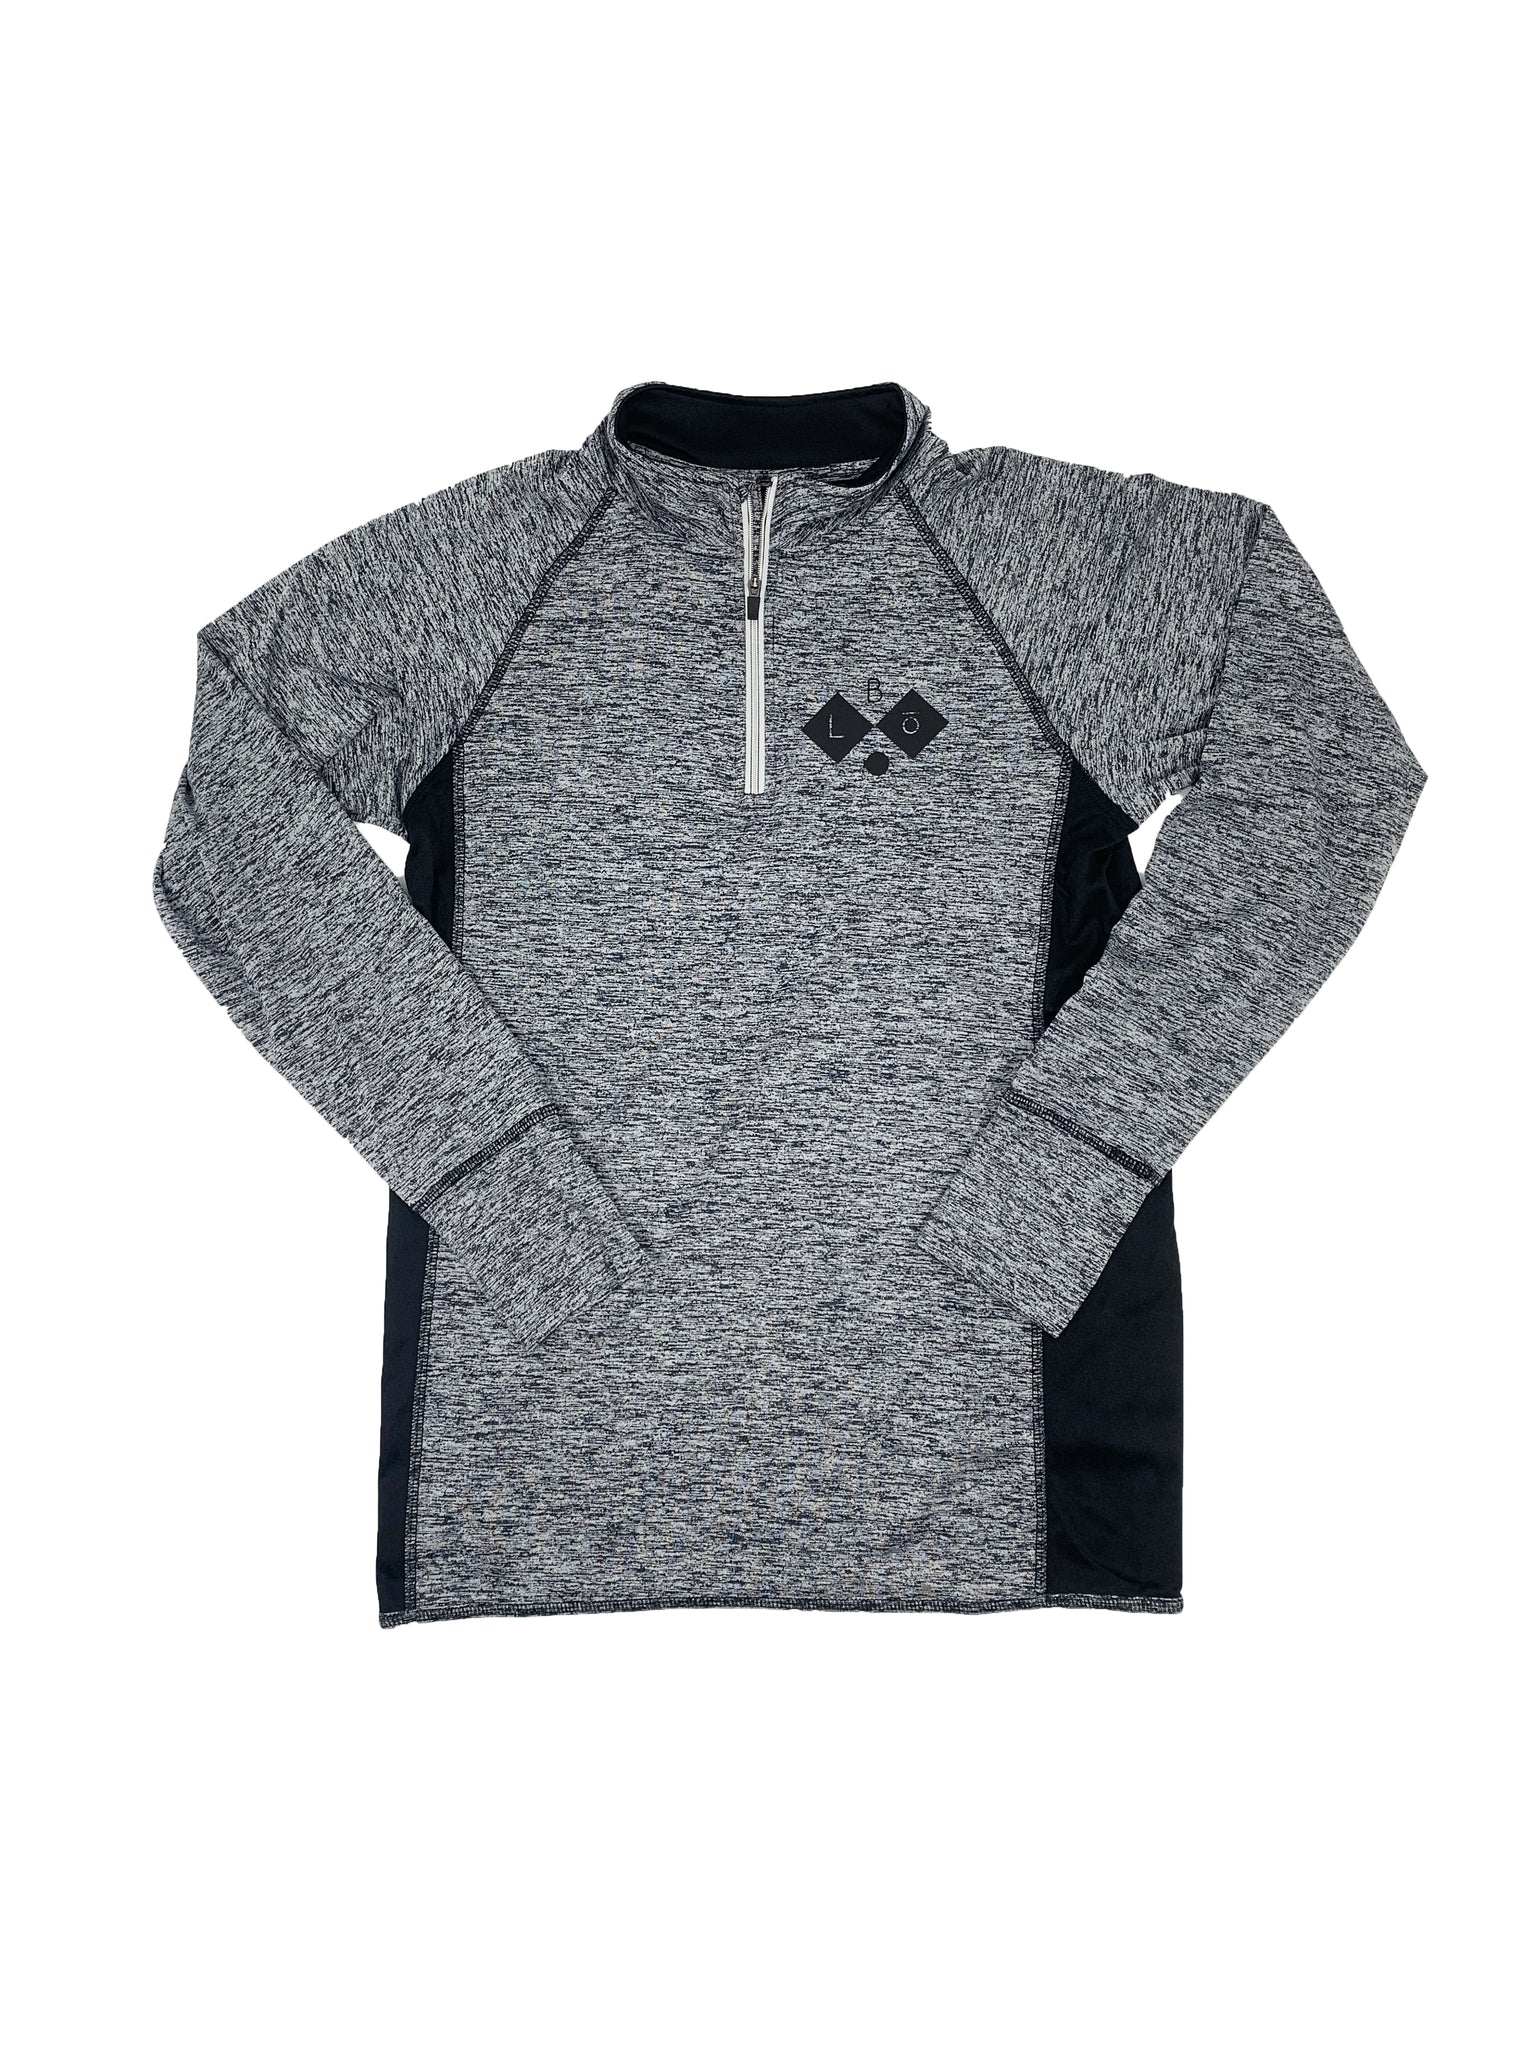 GO RUN. | 1/4 ZIP |